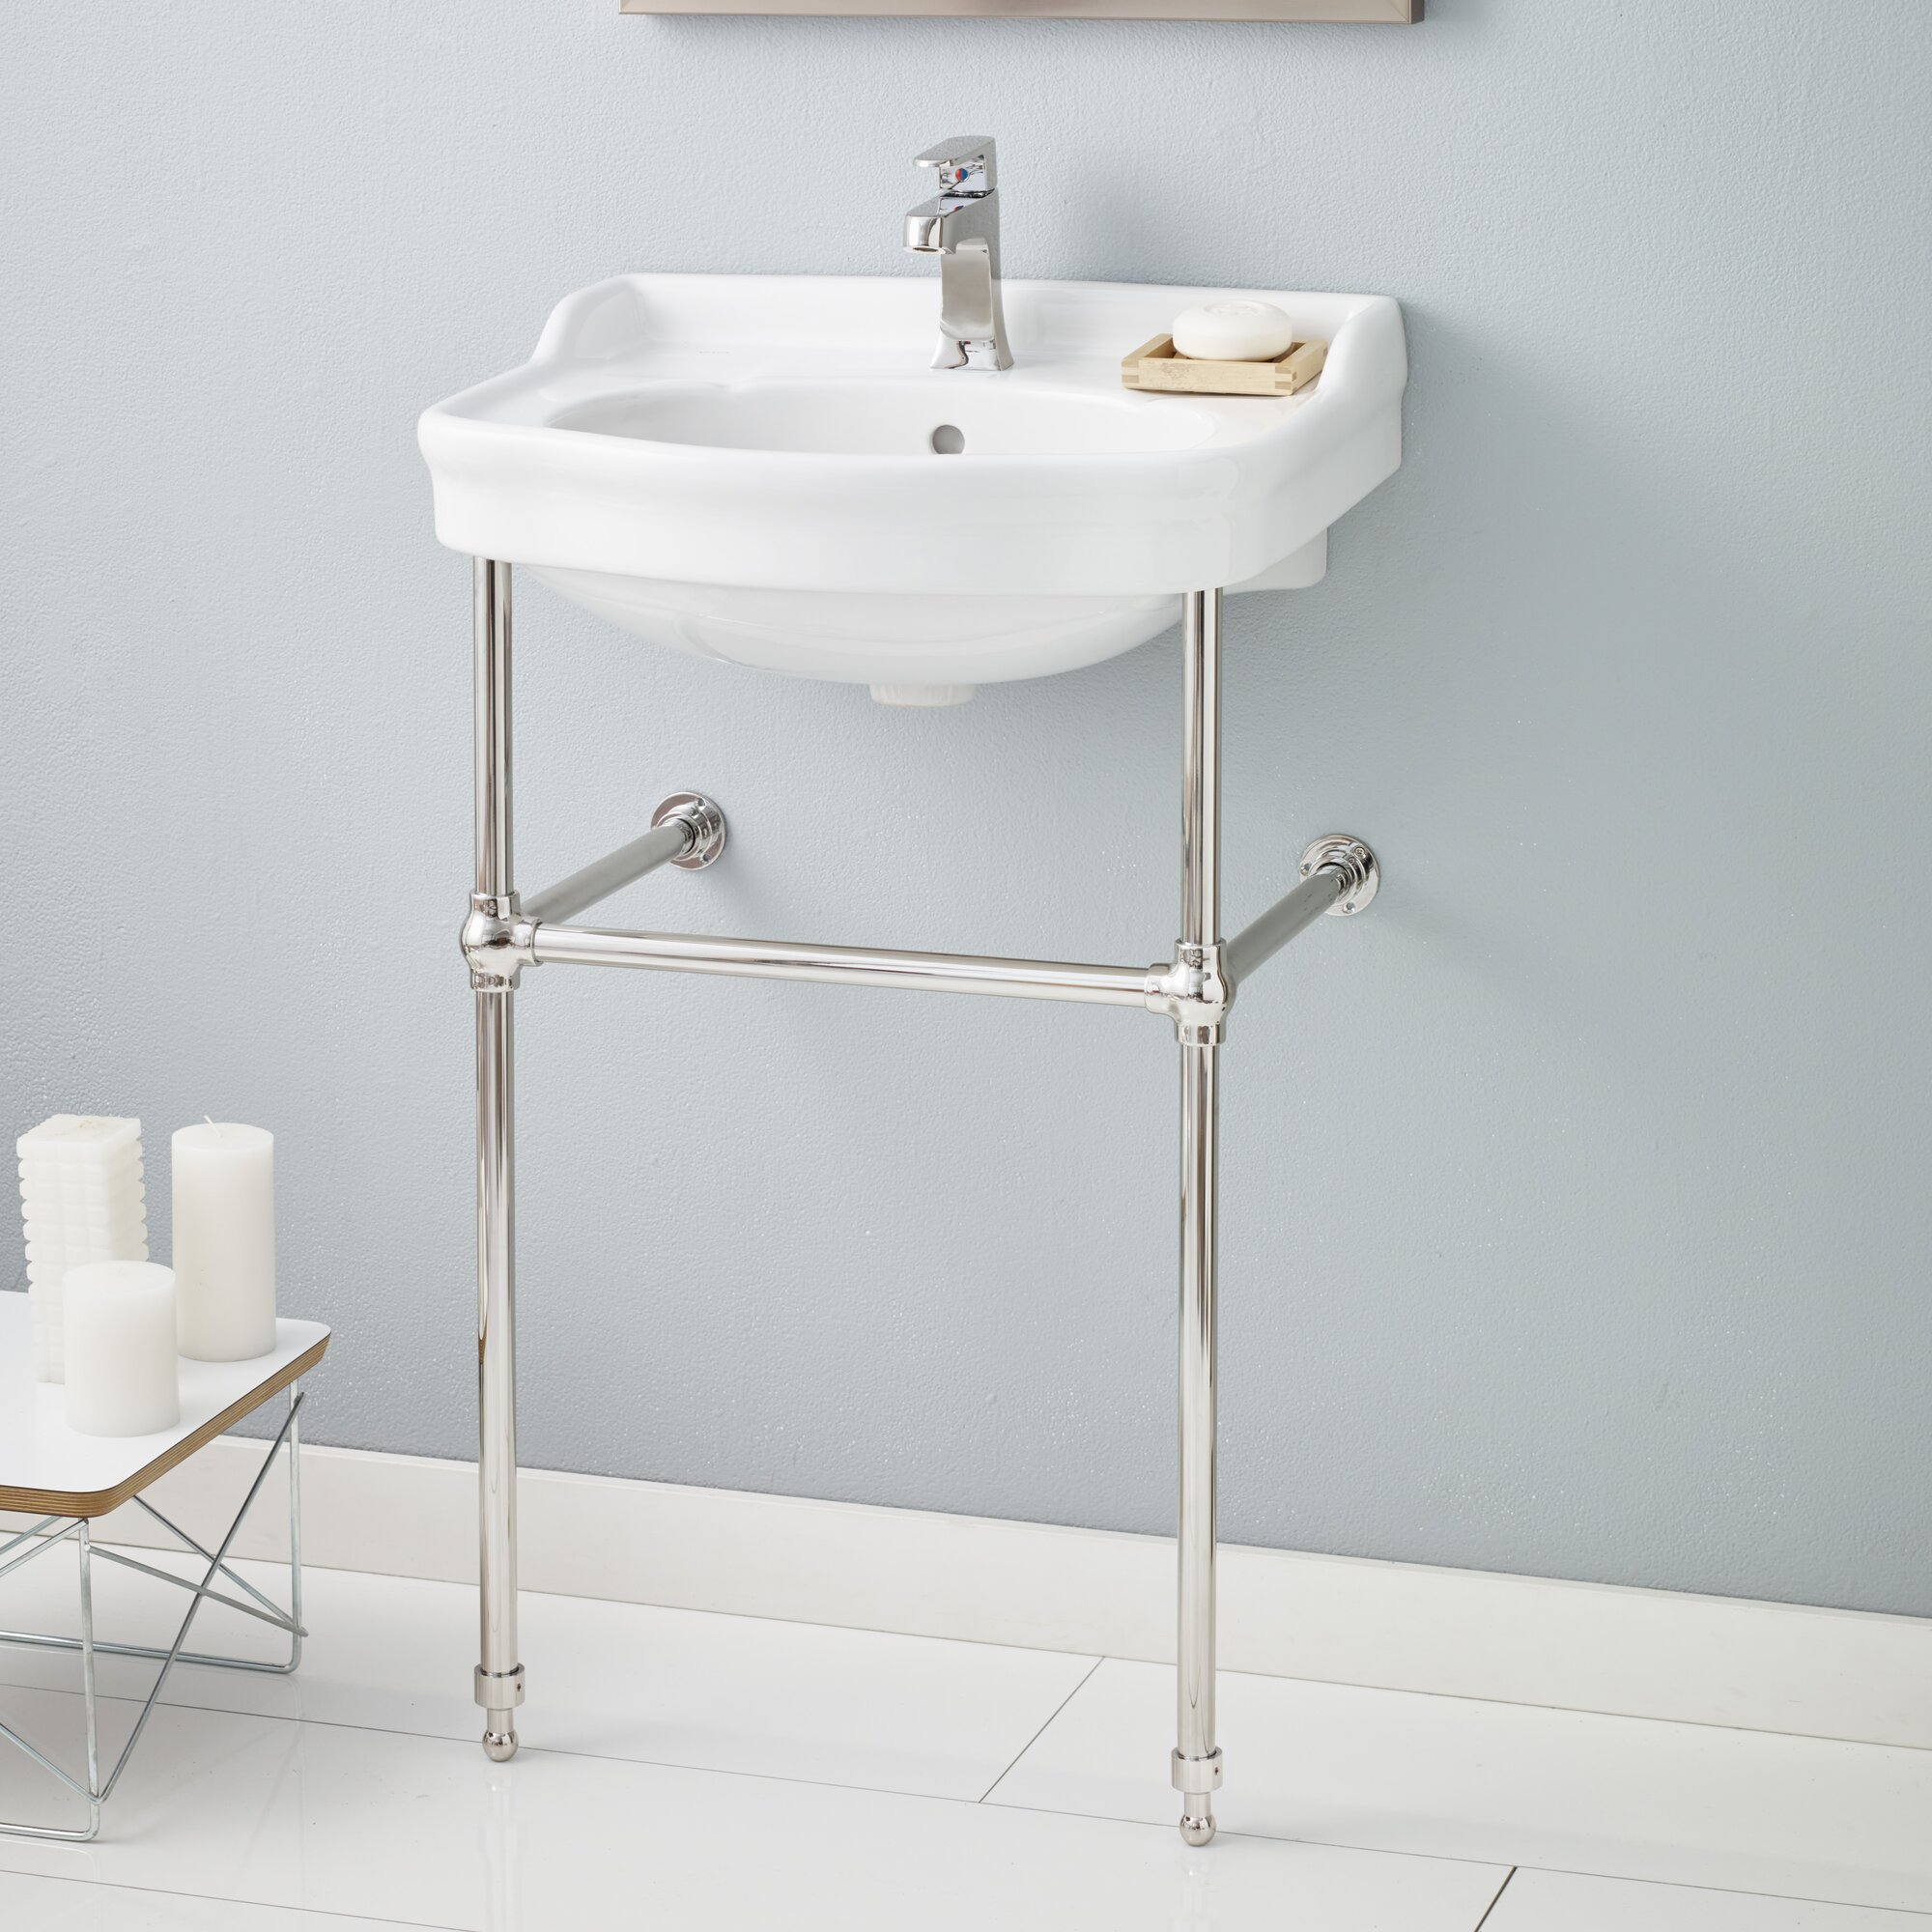 Cheviotproducts 22 5 console bathroom sink with overflow for Bathroom console